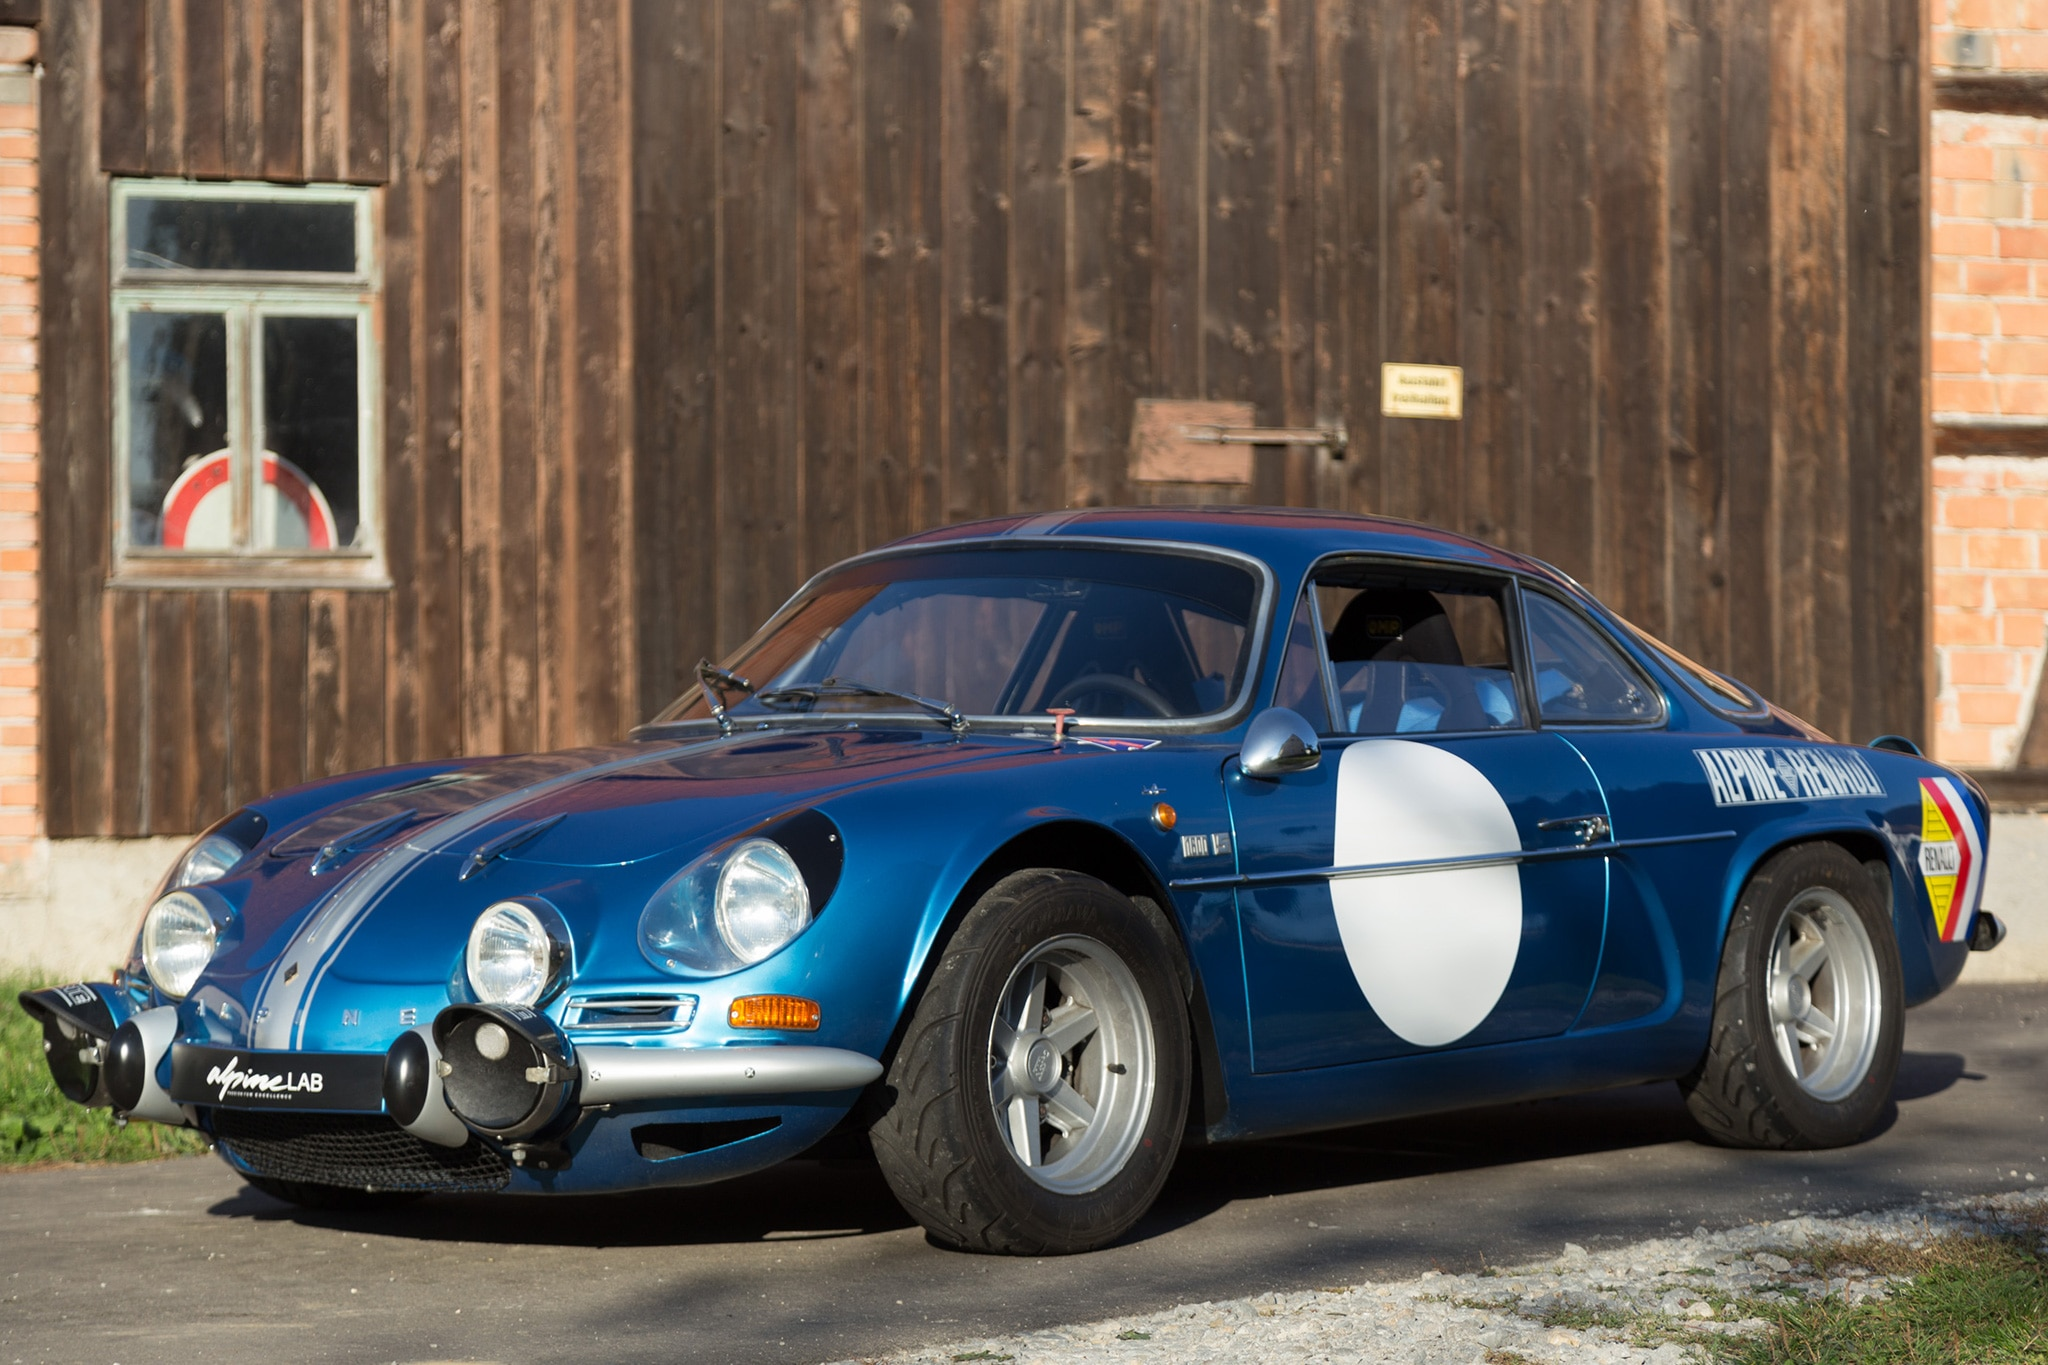 Just Listed 1971 Renault Alpine A110 Period Correct Rally Weapon on kia 4 cylinder